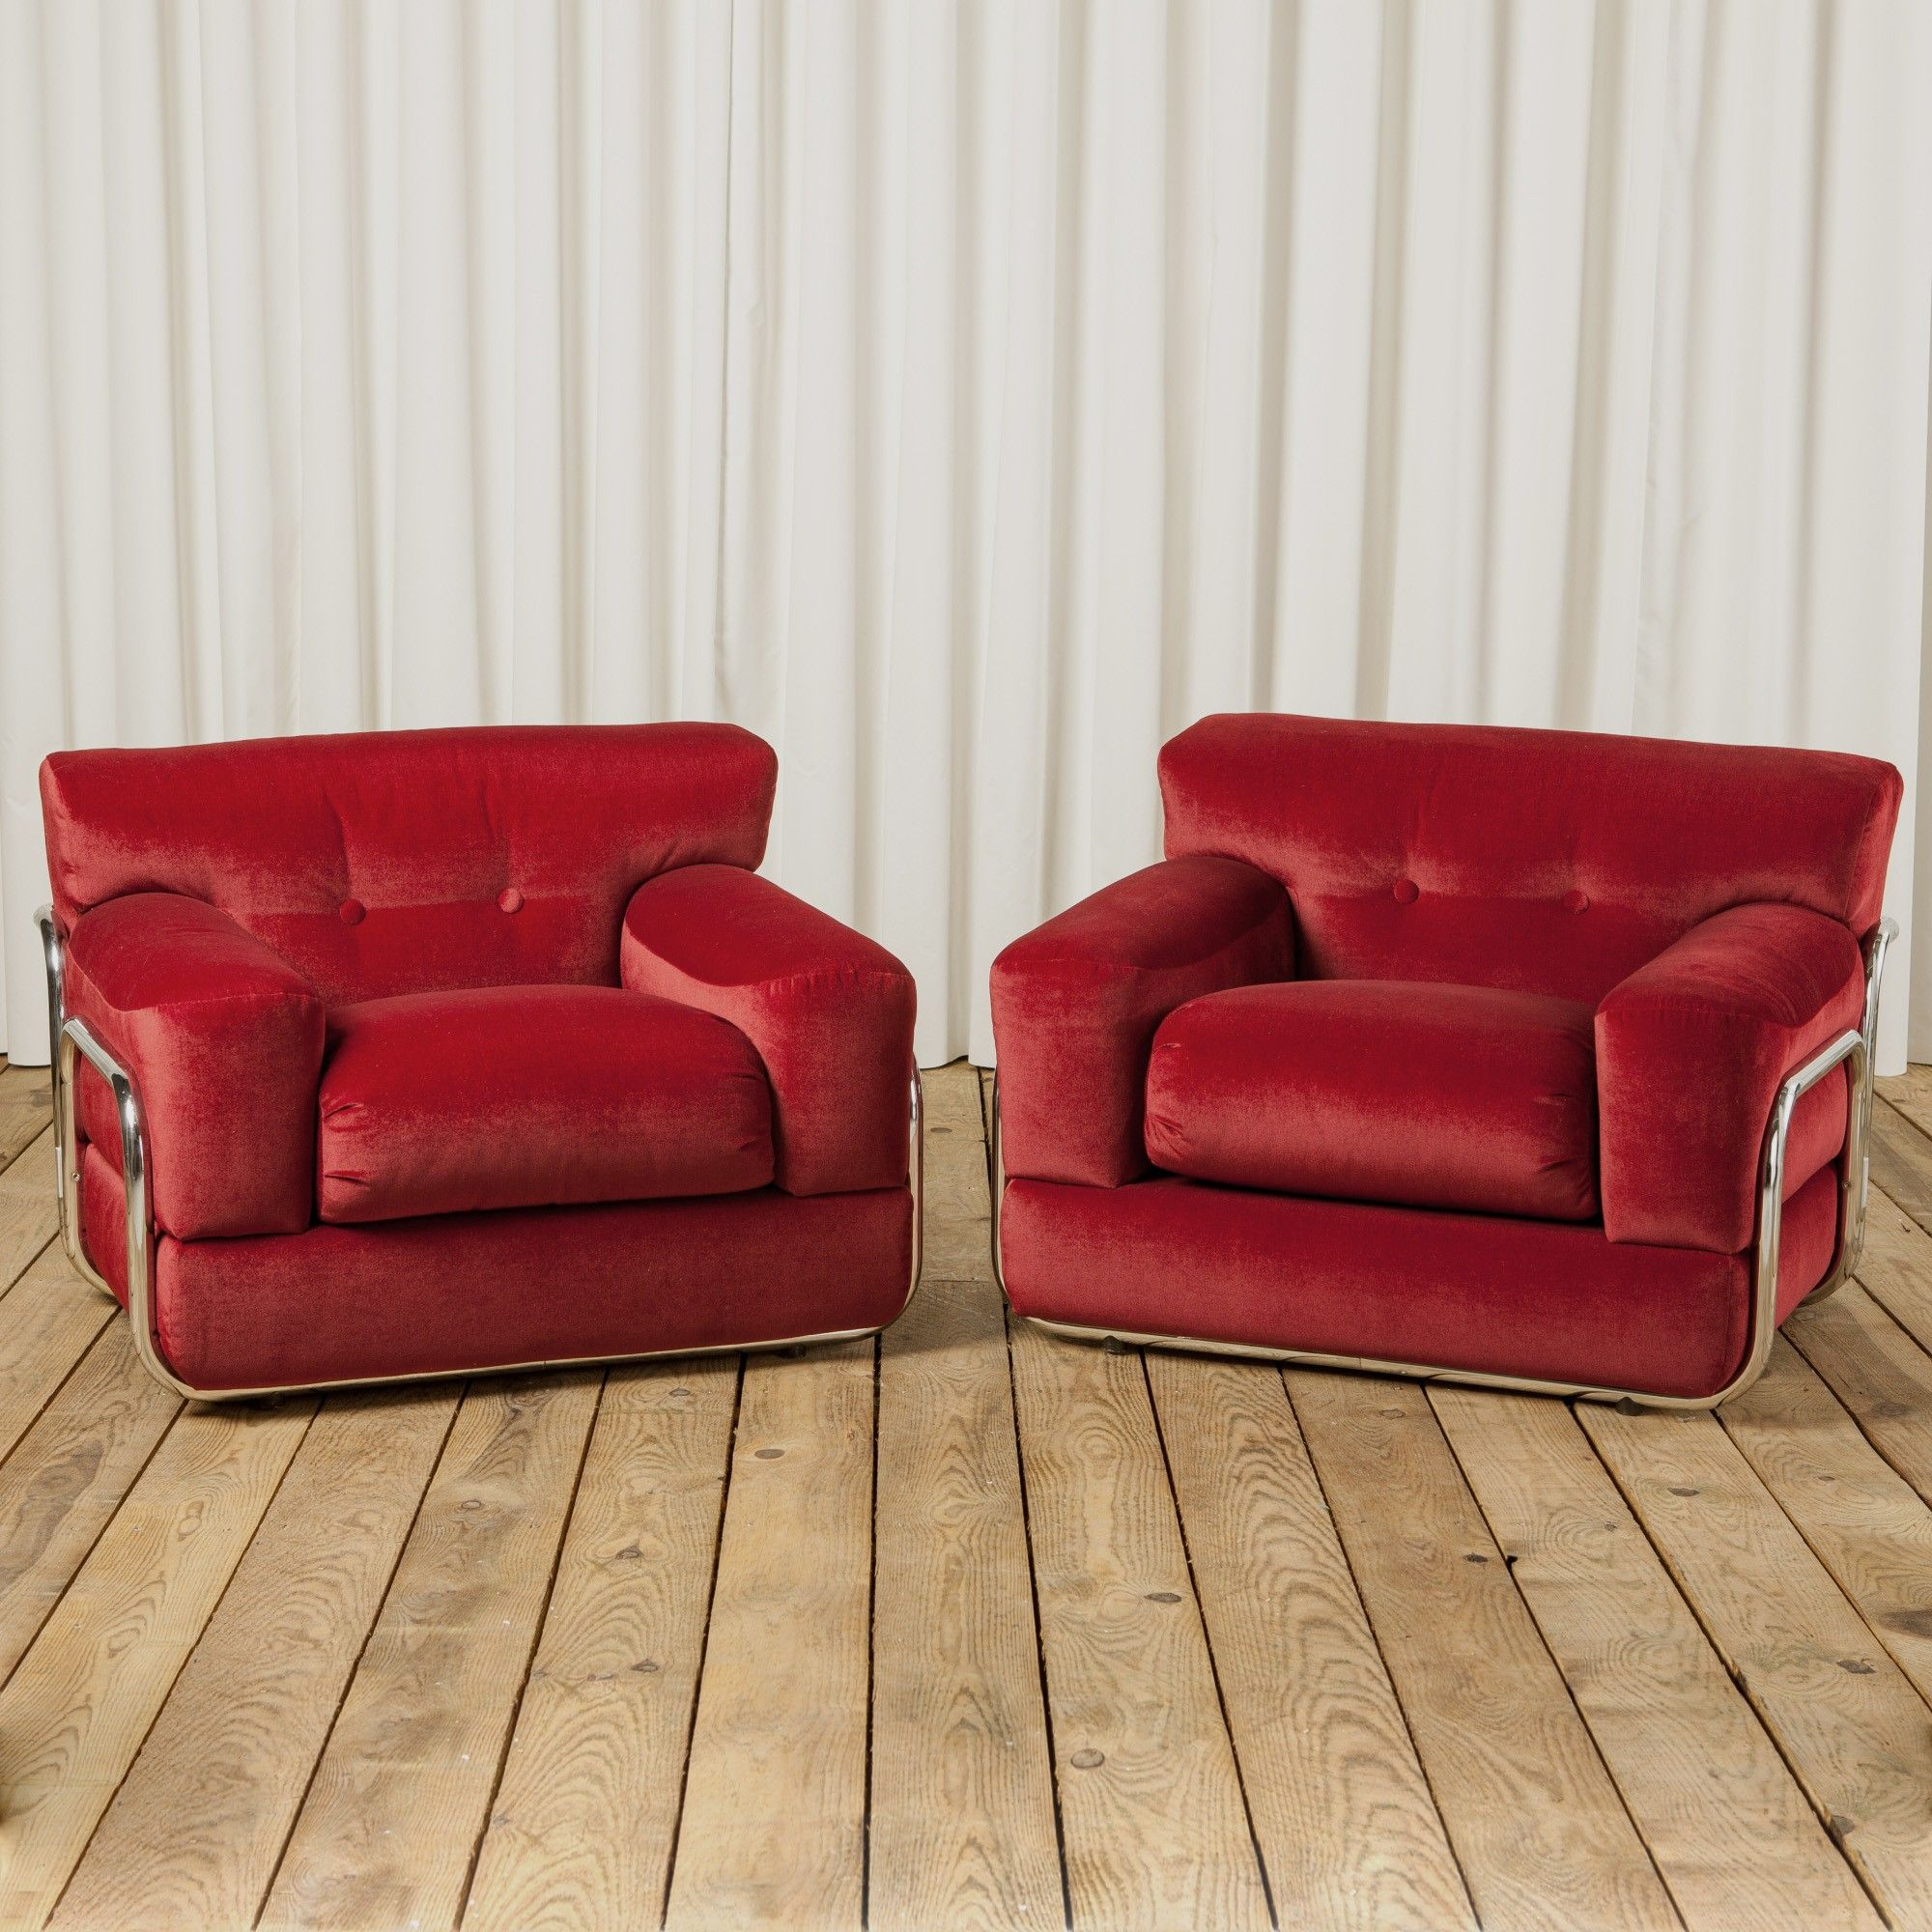 A pair of 1970s chrome framed lounge chairs upholstered in